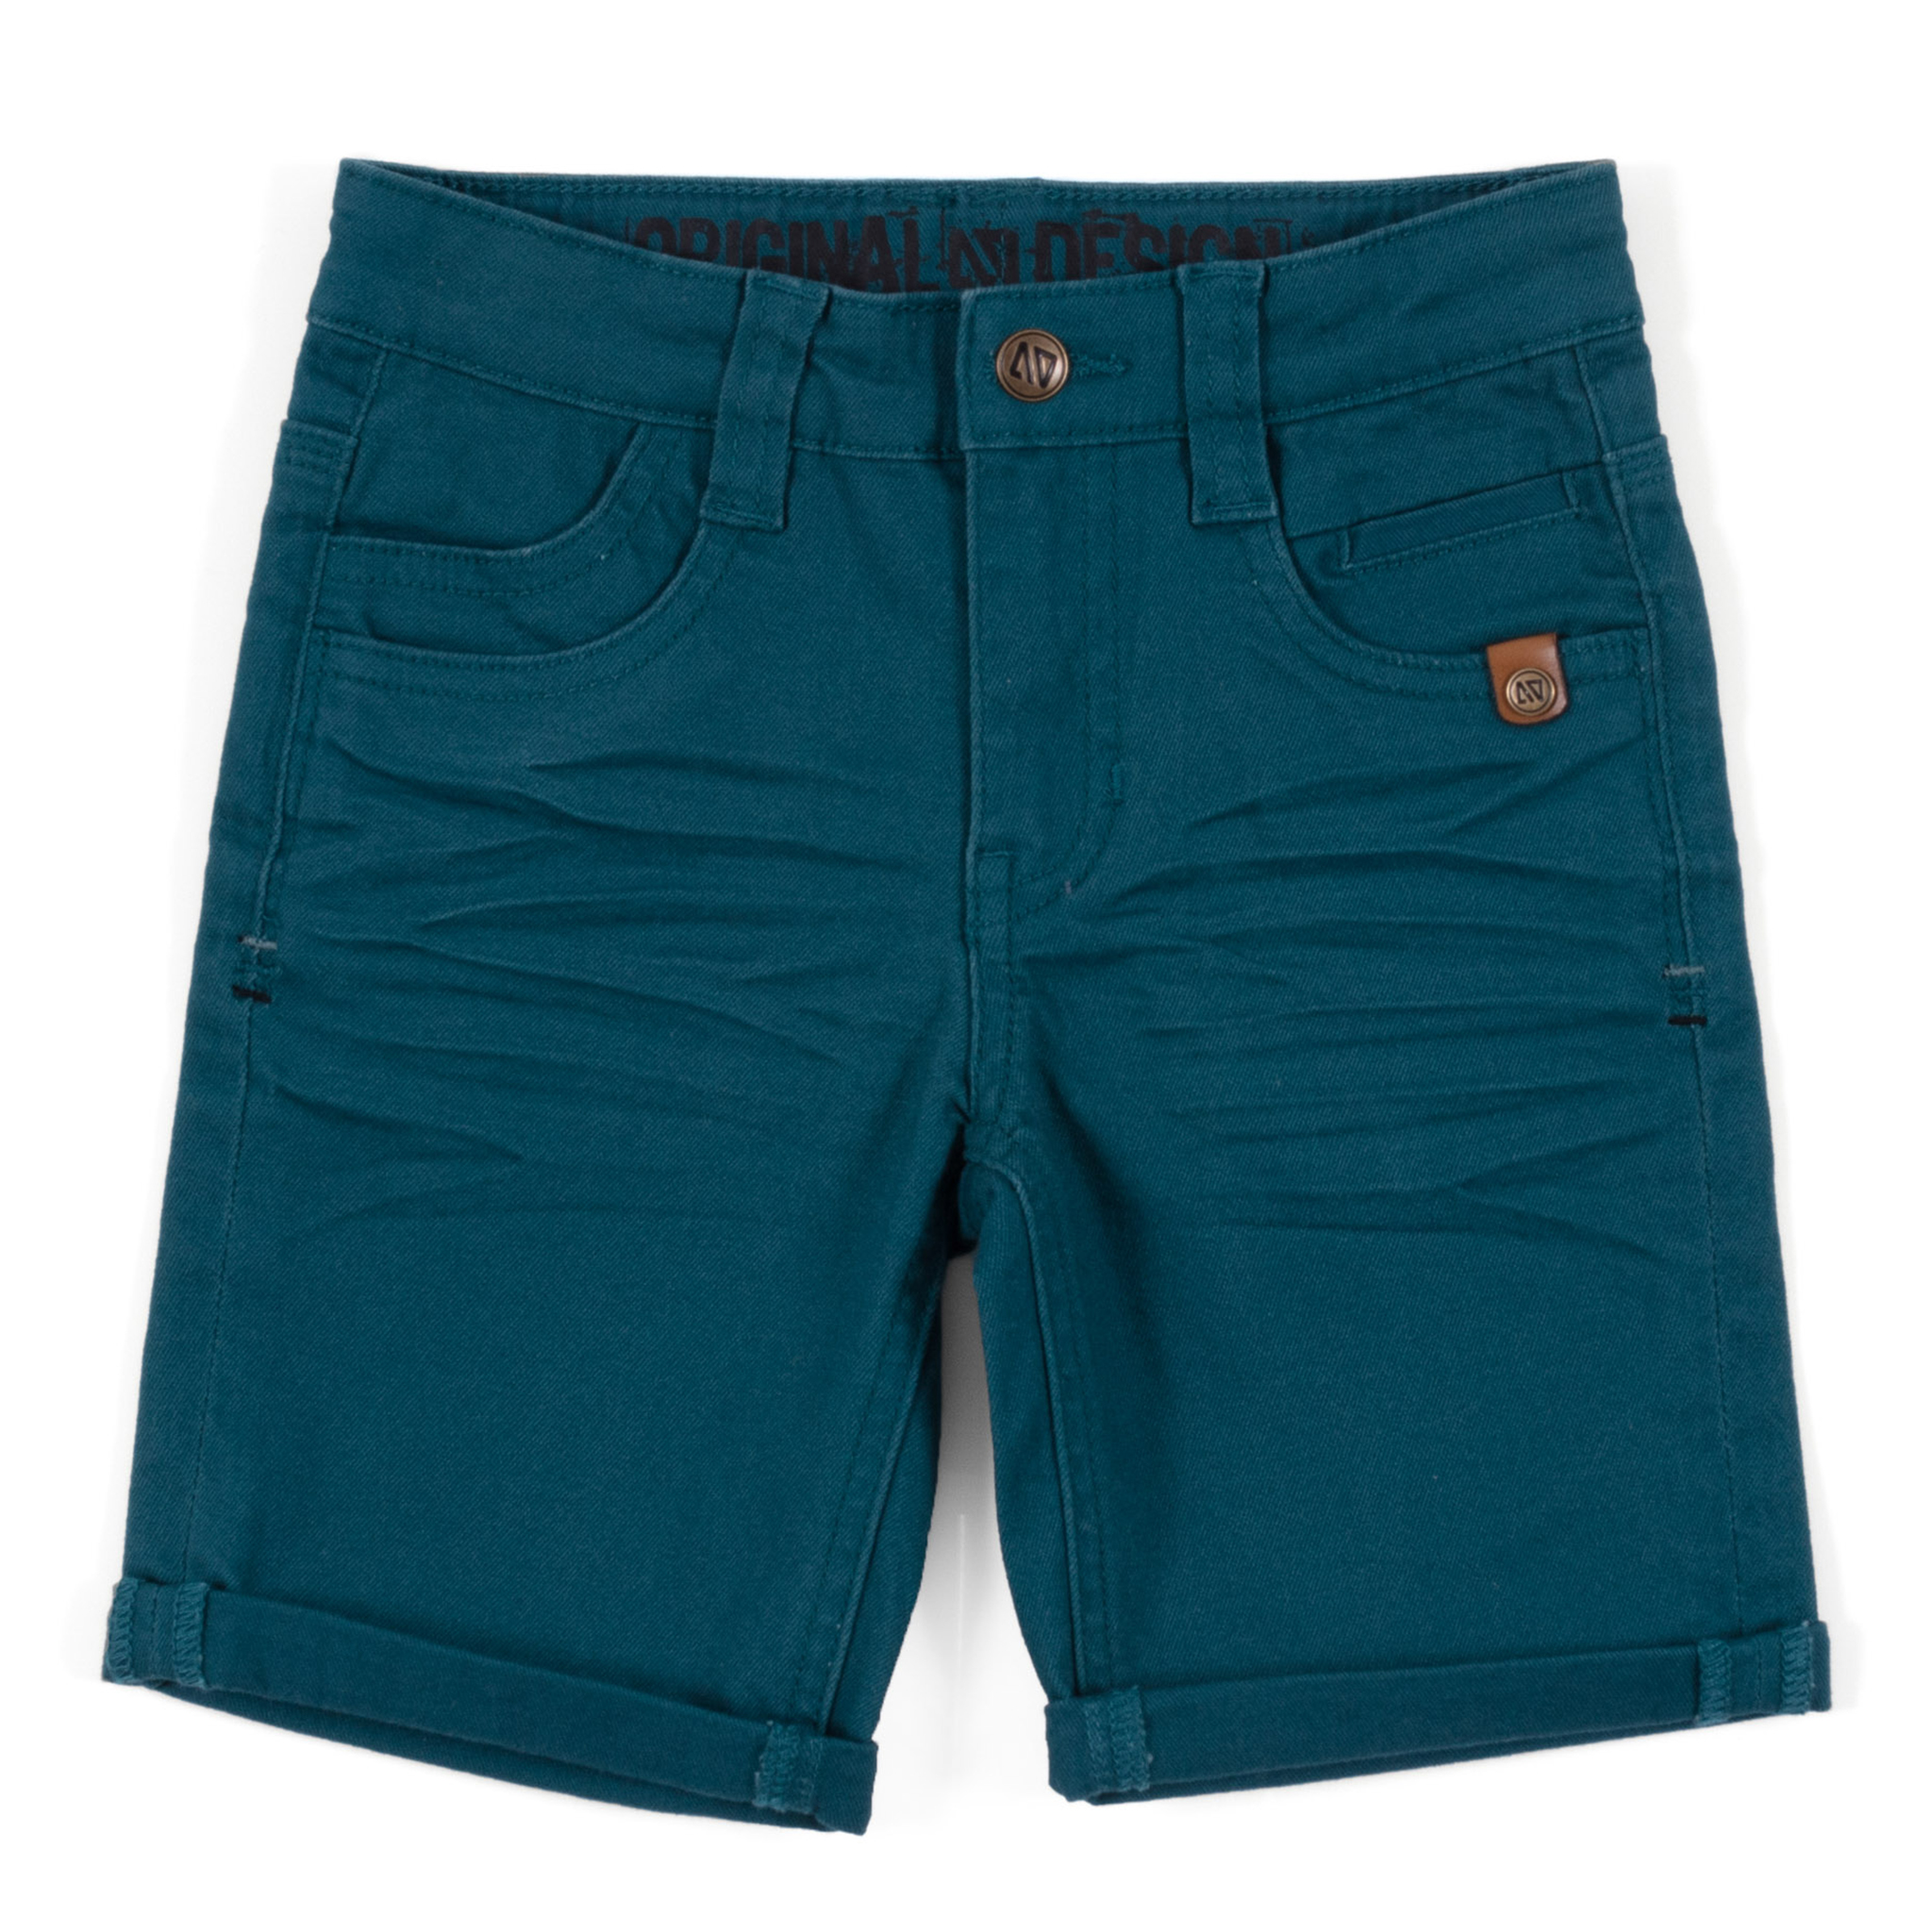 Bermudas - Green - Boys